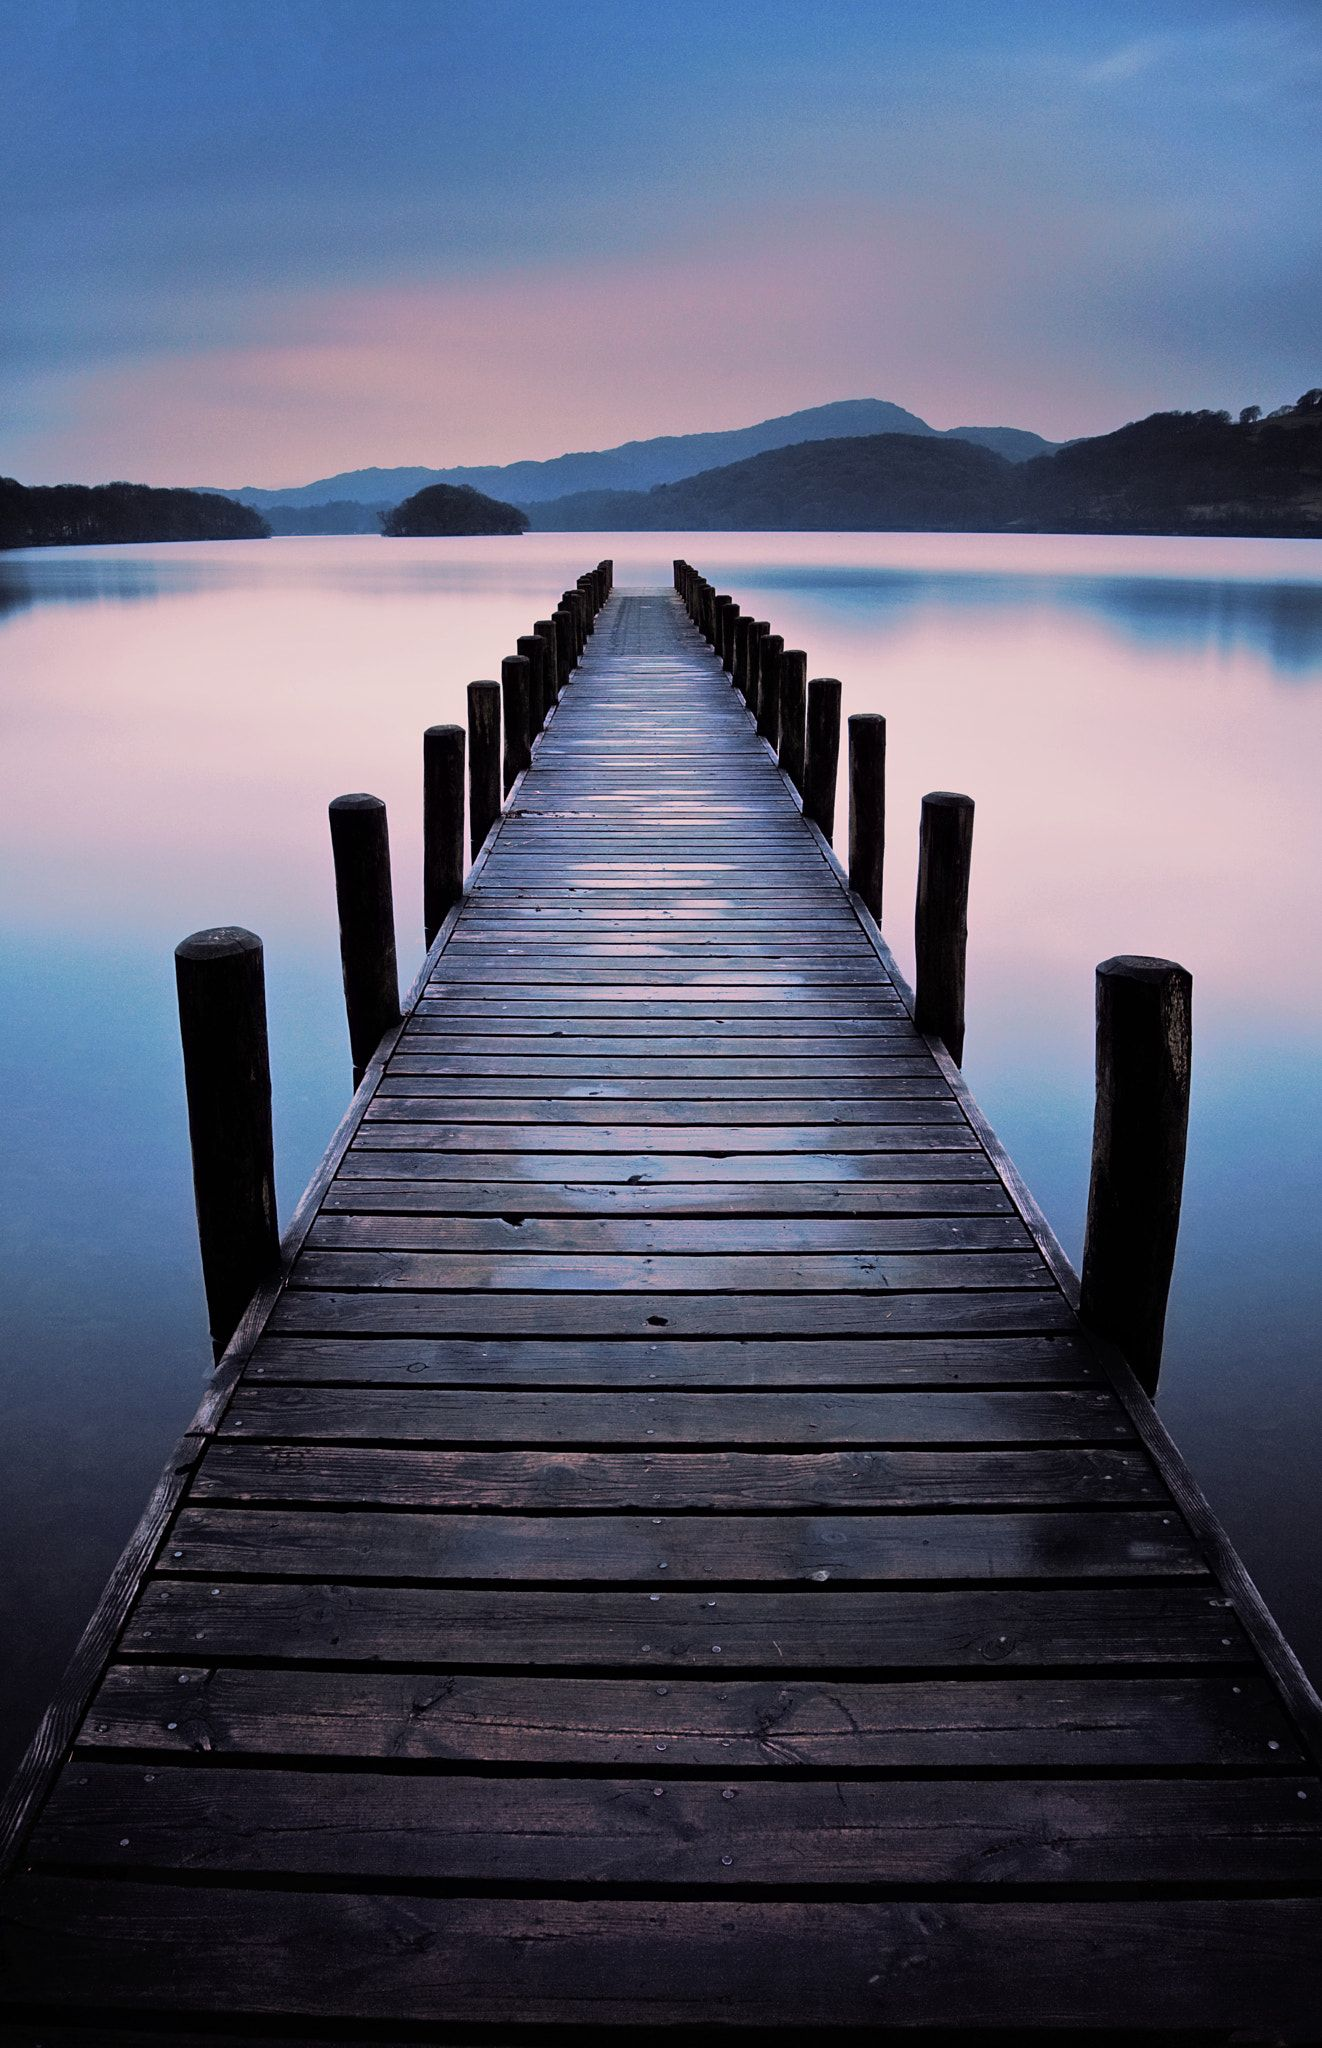 Coniston Jetty Jetty On Coniston Water Lake District Long Exposure After A Light Rain Shower In 2020 Landscape Photos Nature Photography Landscape Photography